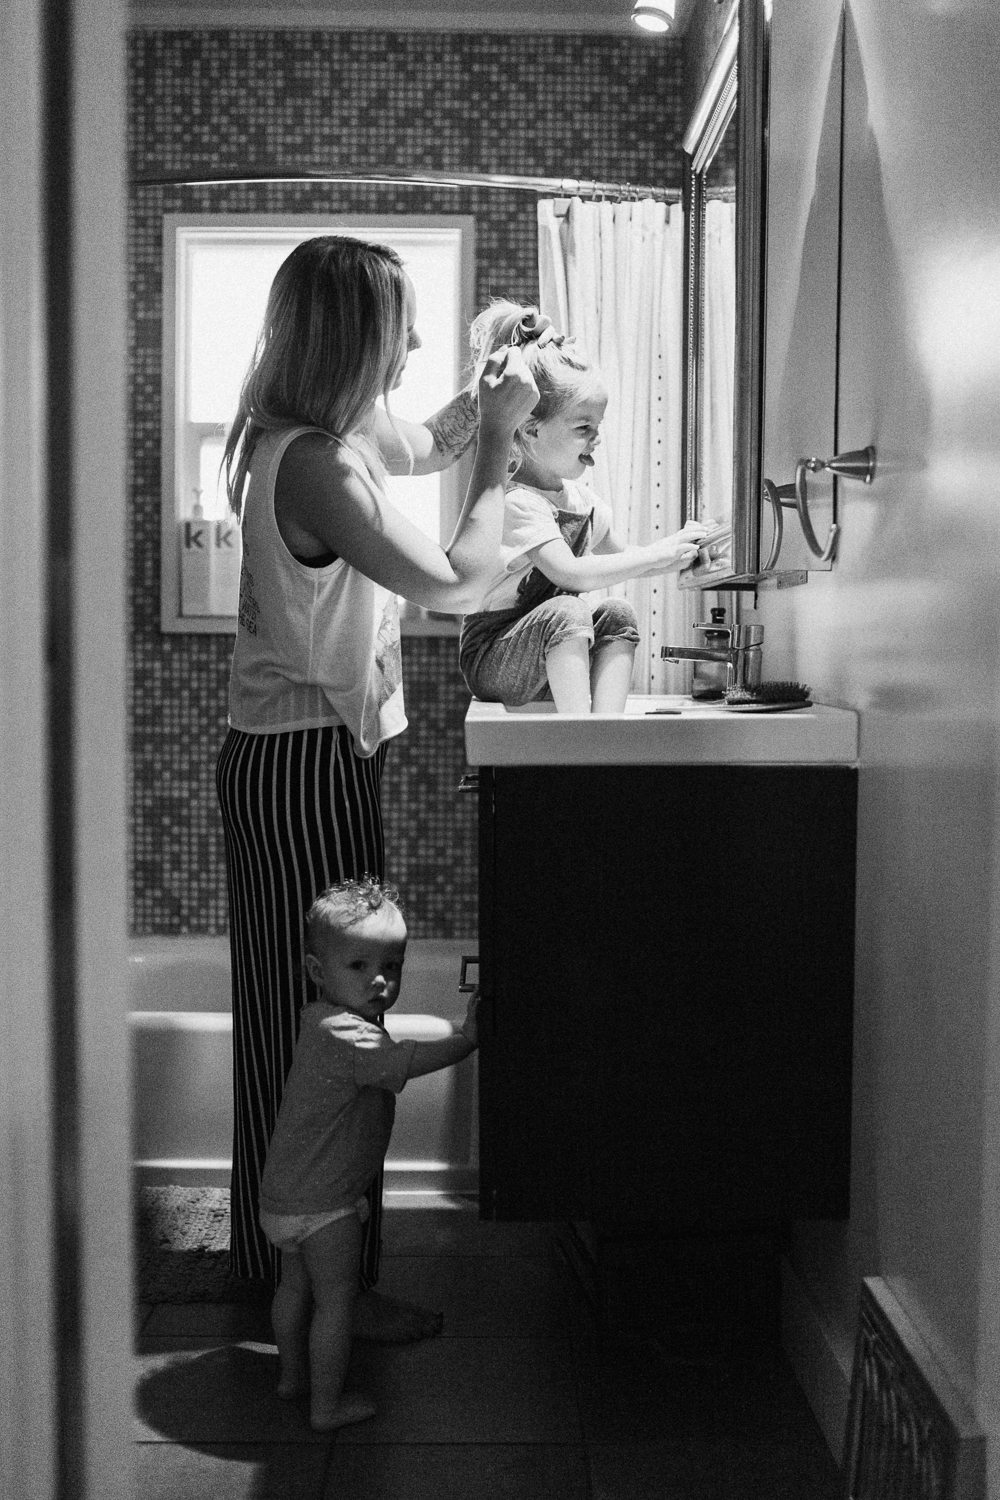 candid-black-and-white-photo-mom-doing-daughters-hair-in-bathroom-during-in-home-session-with-jen-fairchild-in-salt-lake-city-utah